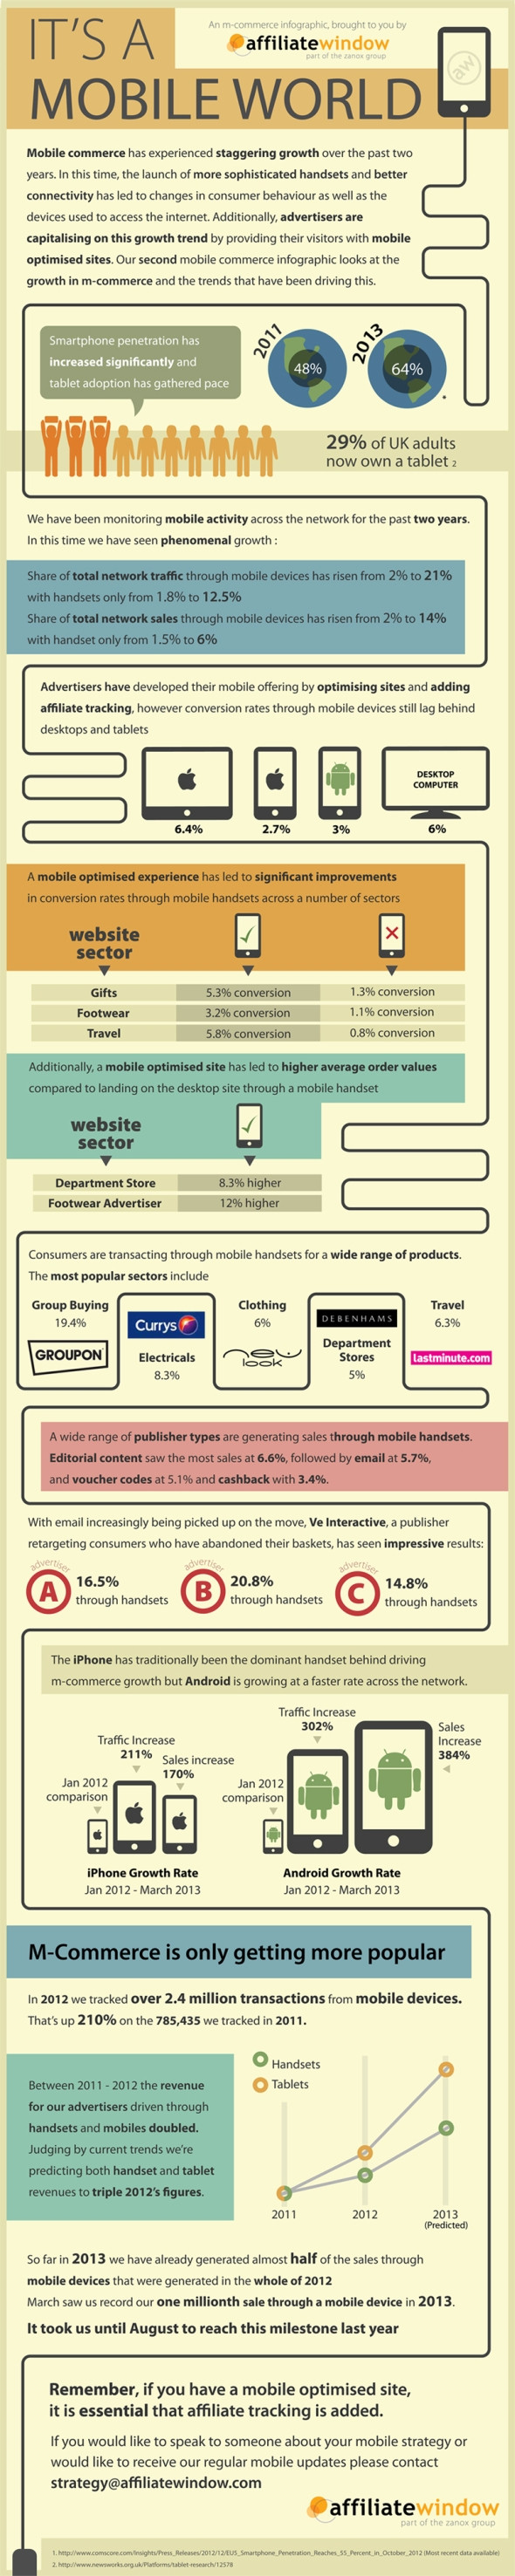 Affiliate Window mobile infographic